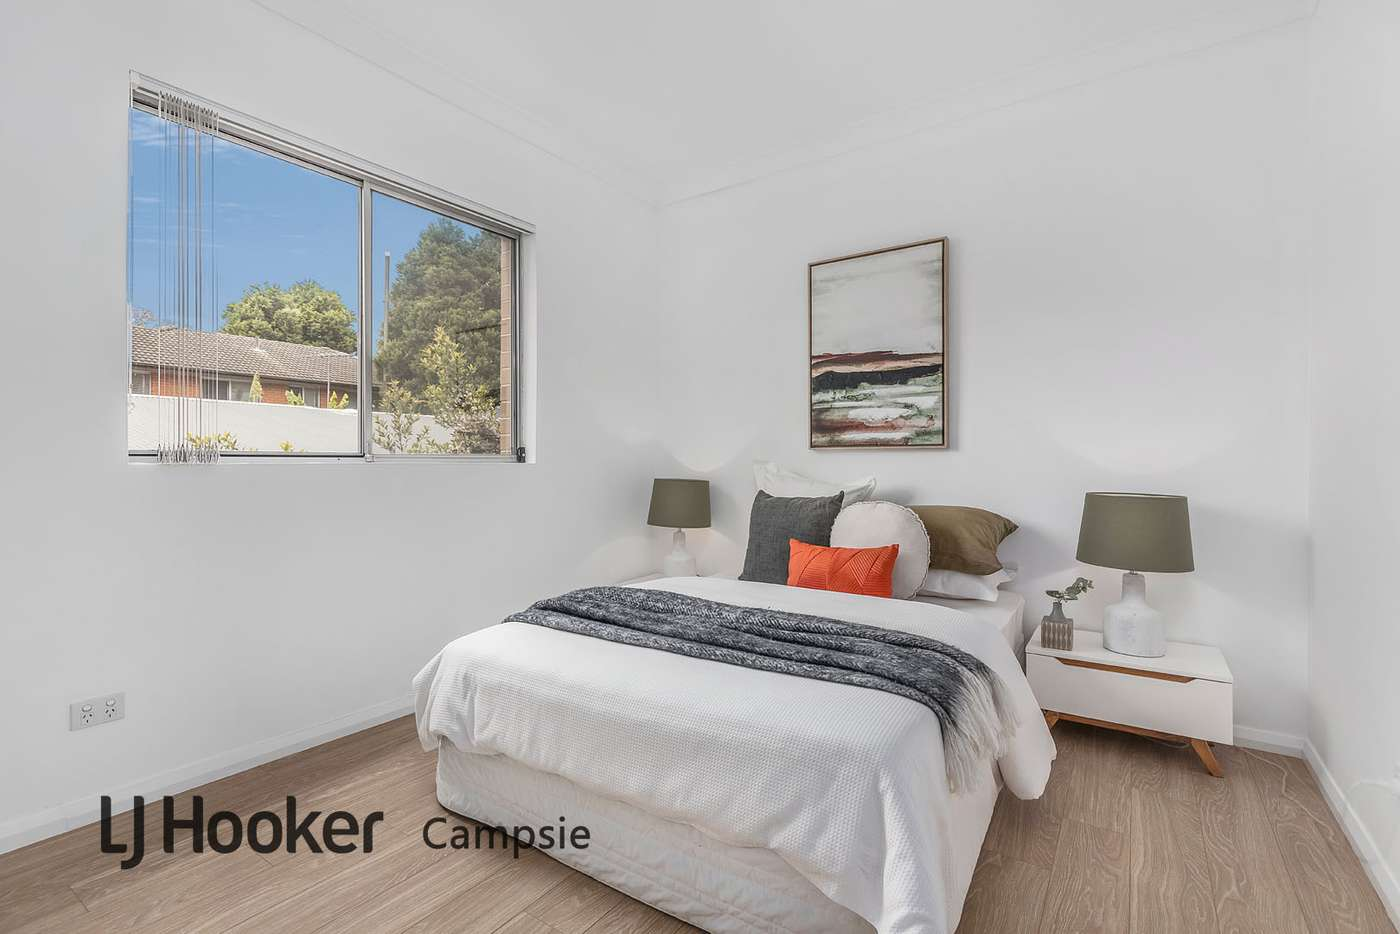 Fifth view of Homely apartment listing, 3/86-88 Ninth Avenue, Campsie NSW 2194